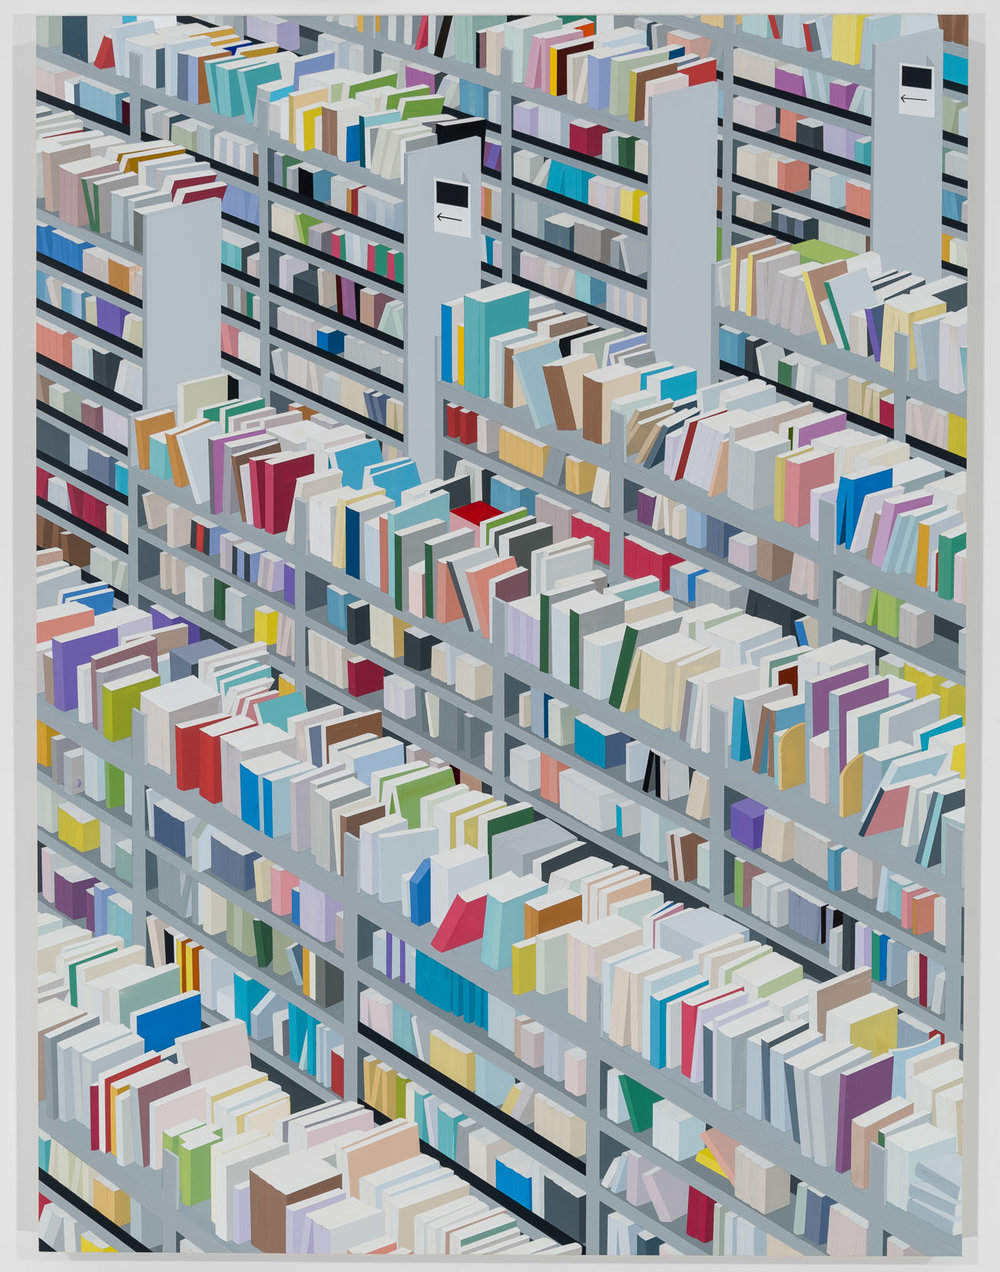 Amazon Books (Small Version), 2017. Acrylic on Dibond, 32 x 24""